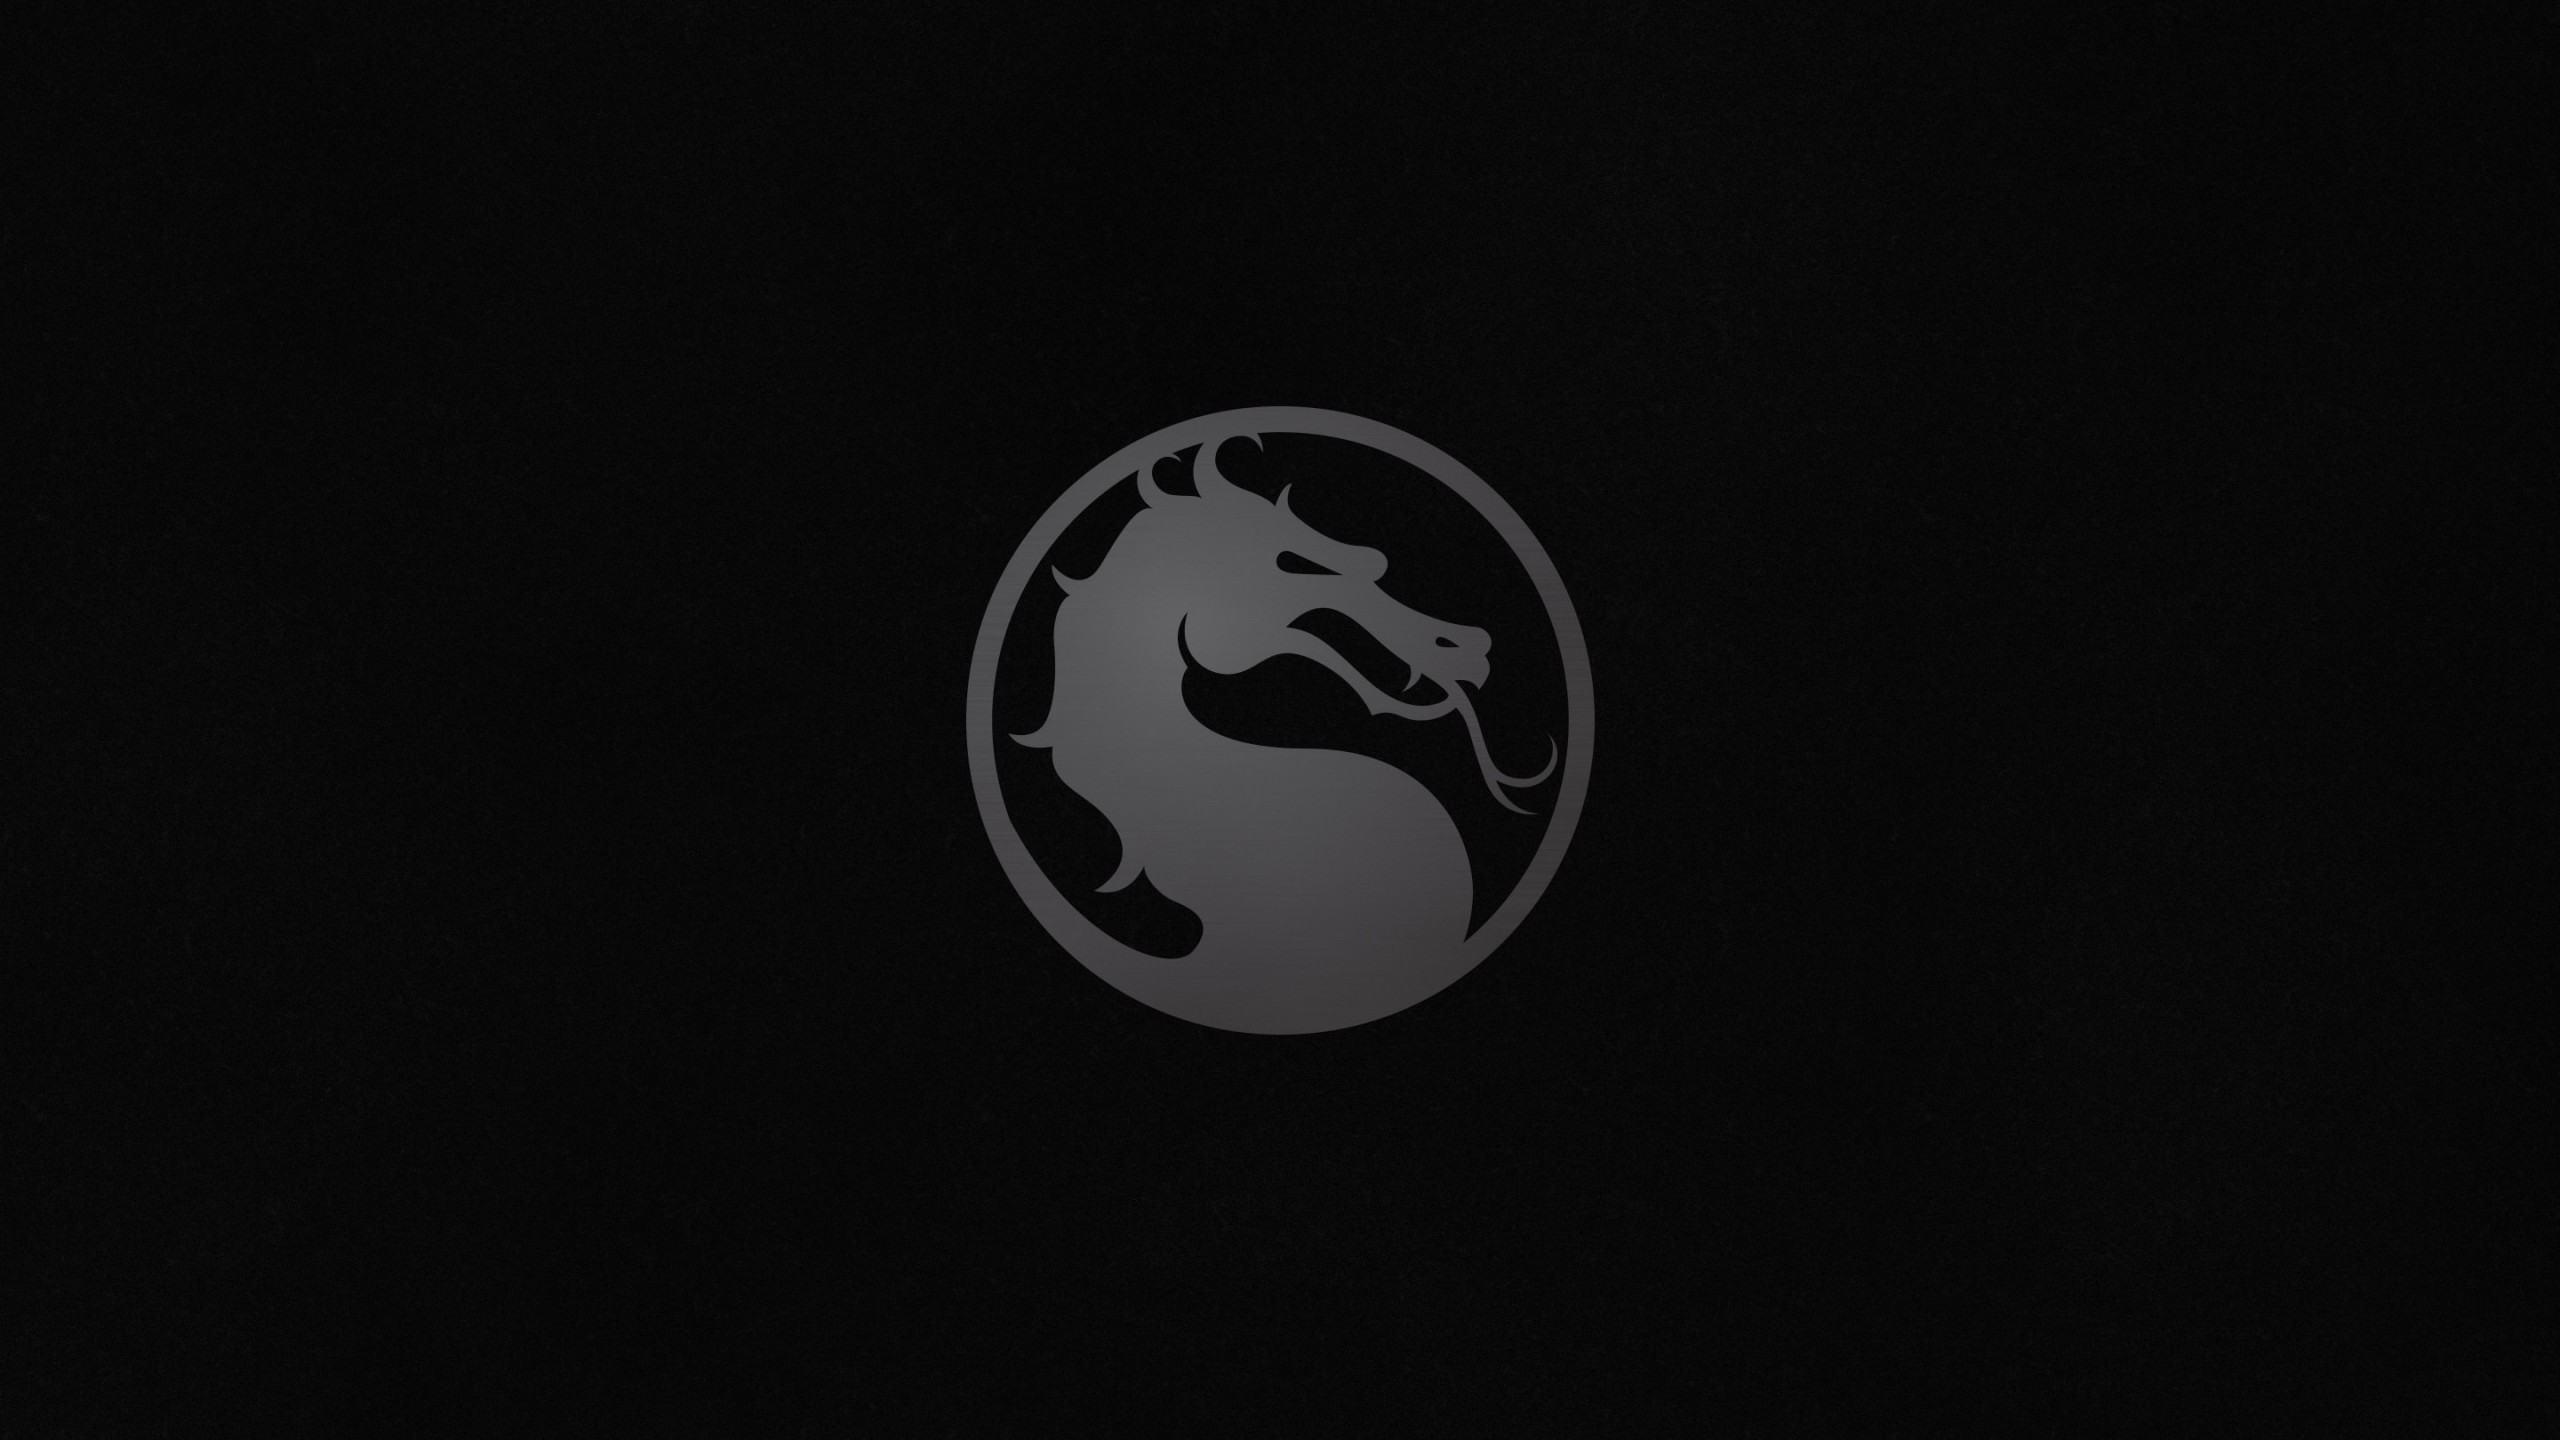 mortal-kombat-logo-wallpapers-hd | wallpaper.wiki